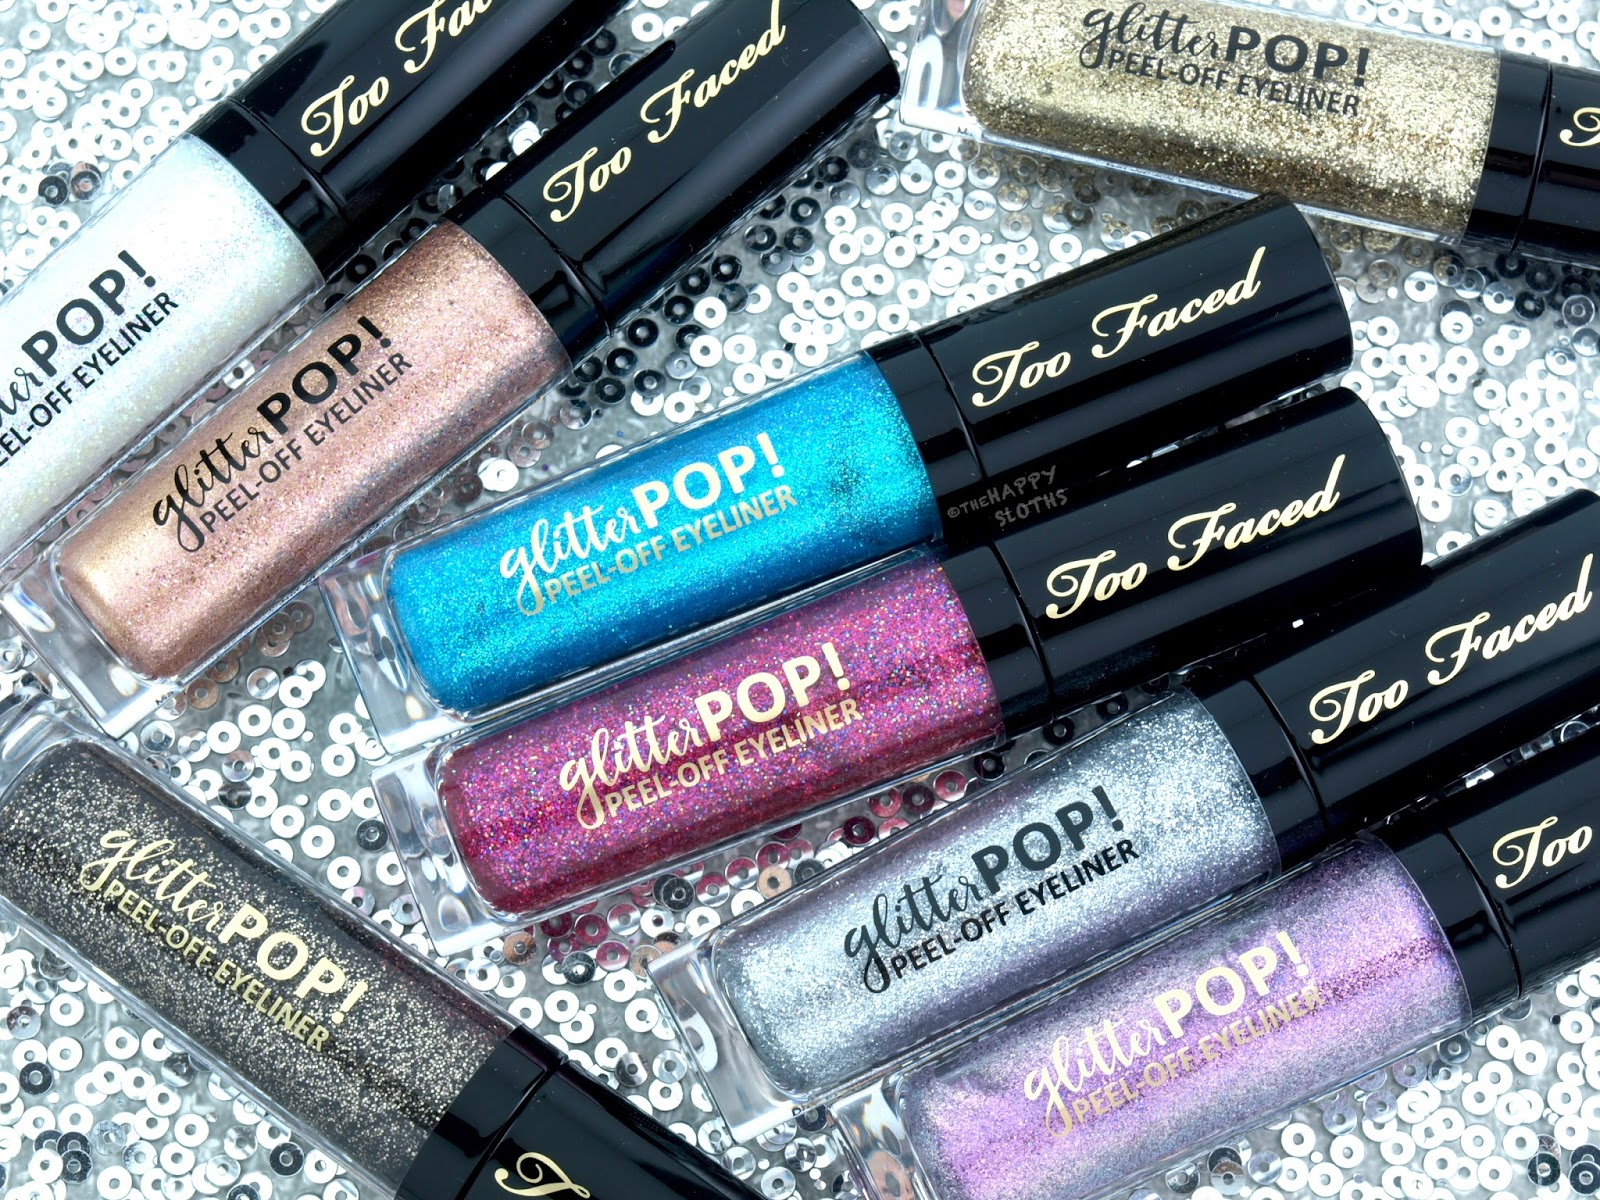 Too Faced Glitter Pop! Peel-Off Eyeliner: Review and Swatches